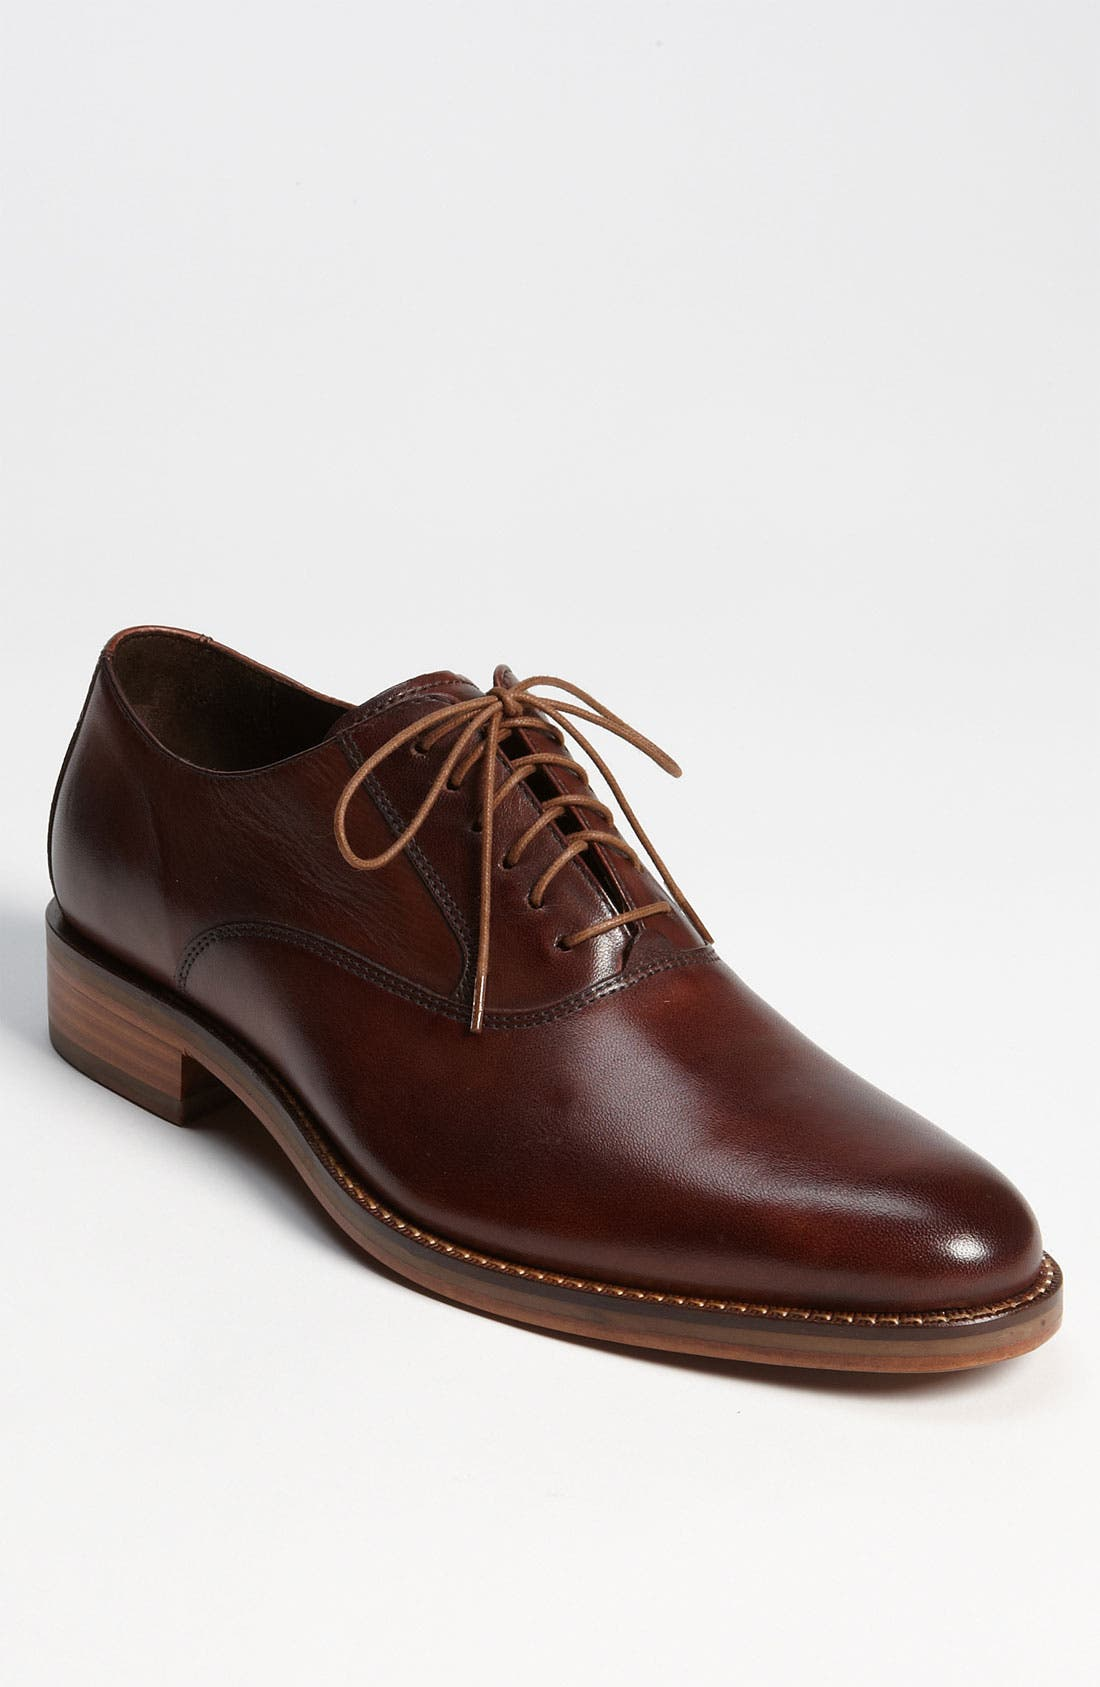 Alternate Image 1 Selected - Cole Haan 'Air Madison' Oxford   (Men)